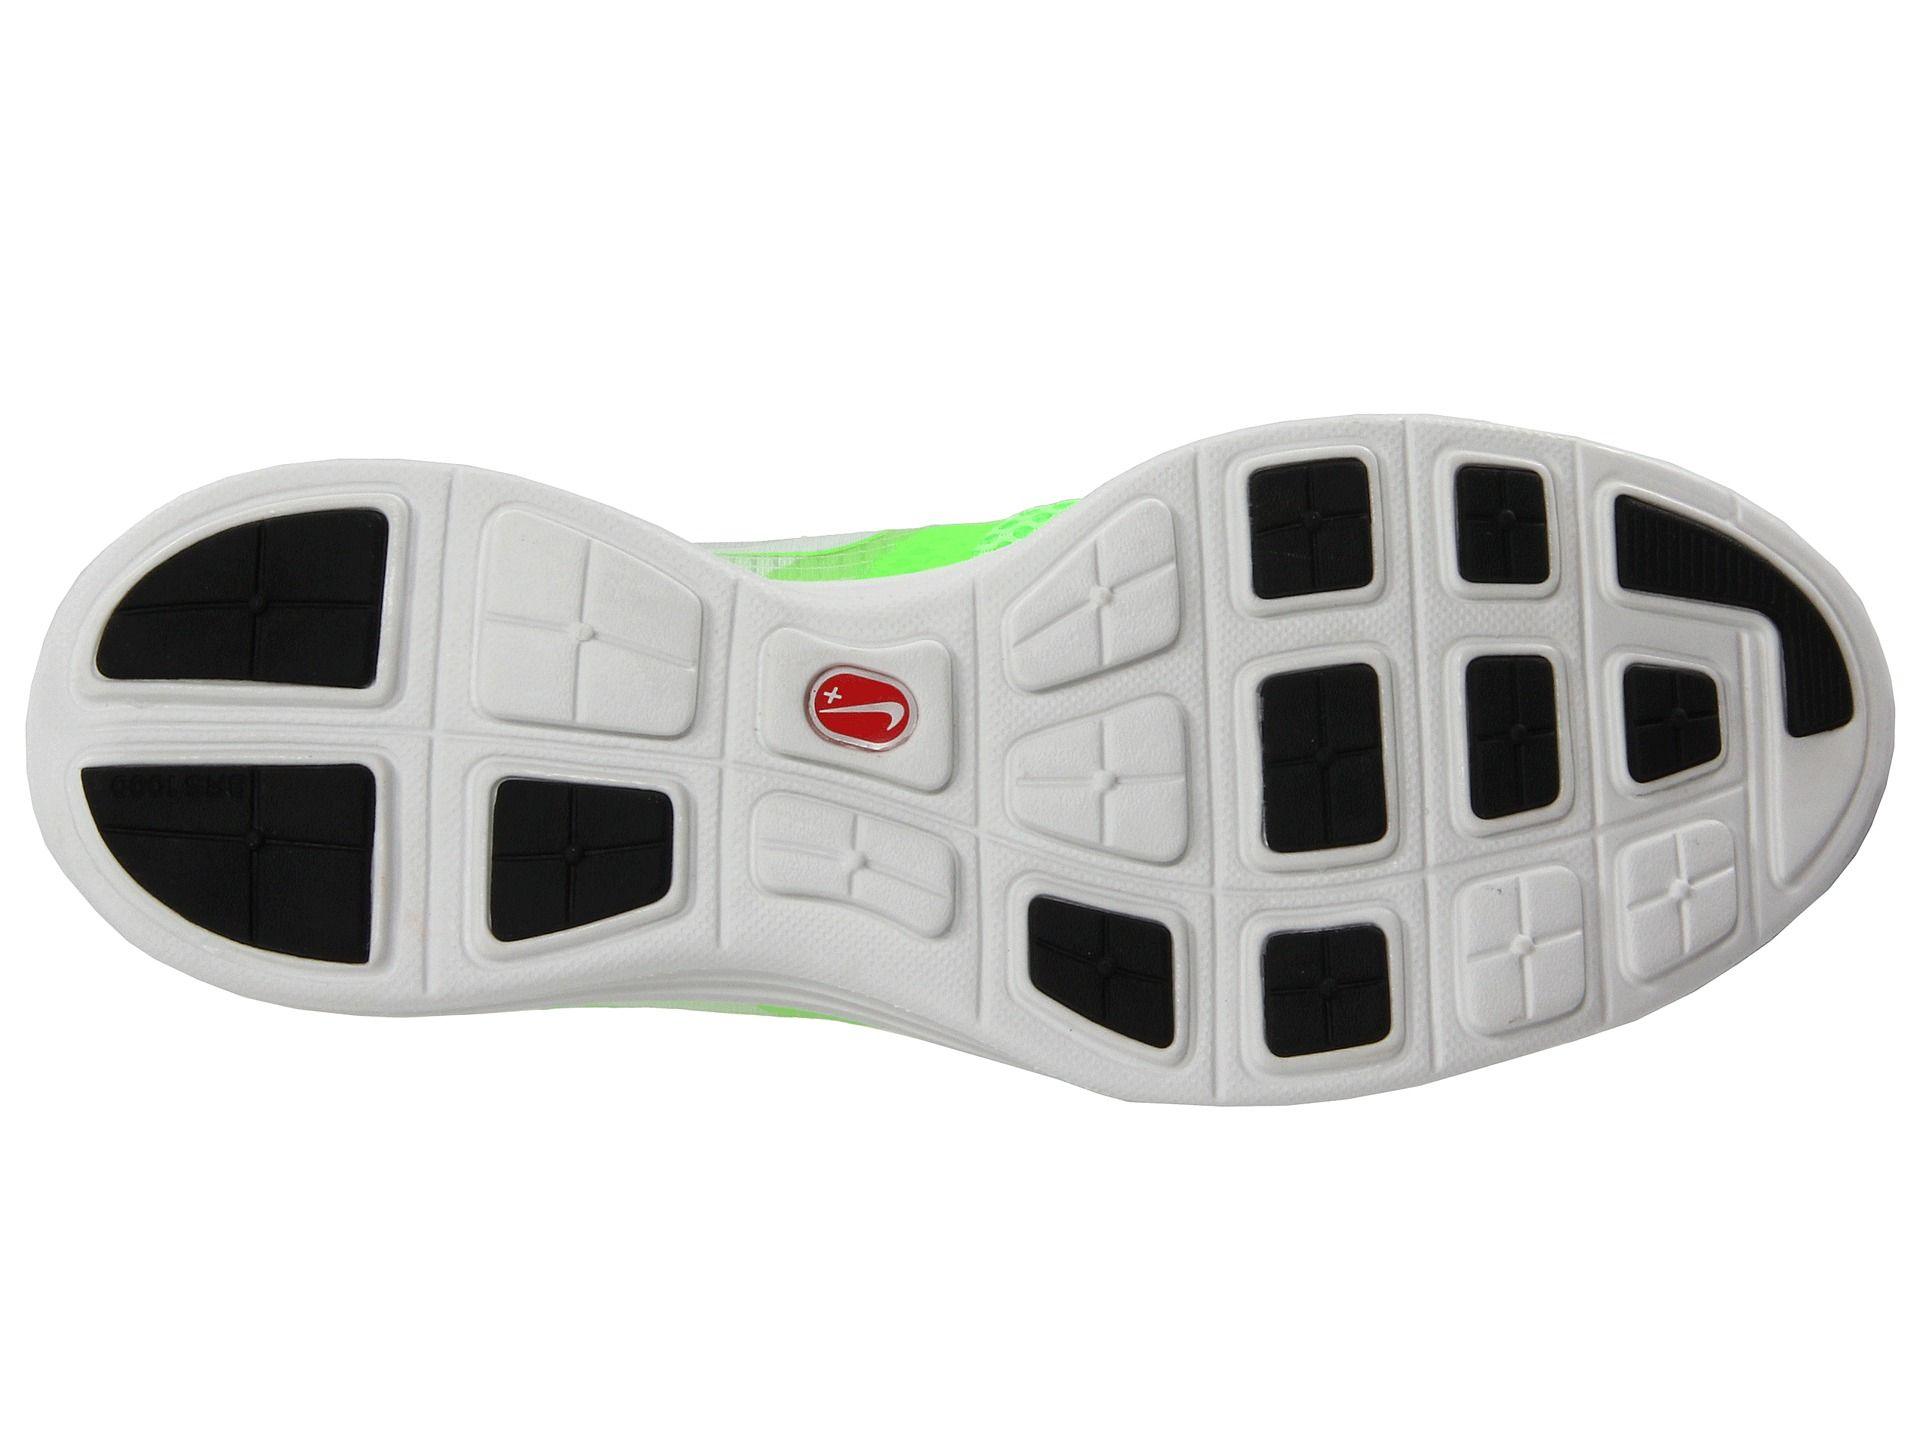 new styles 0c6d6 c8675 ... Nike Lunar Montreal Electric GreenSummit WhiteElectric Green -  Zappos.com Free . ...